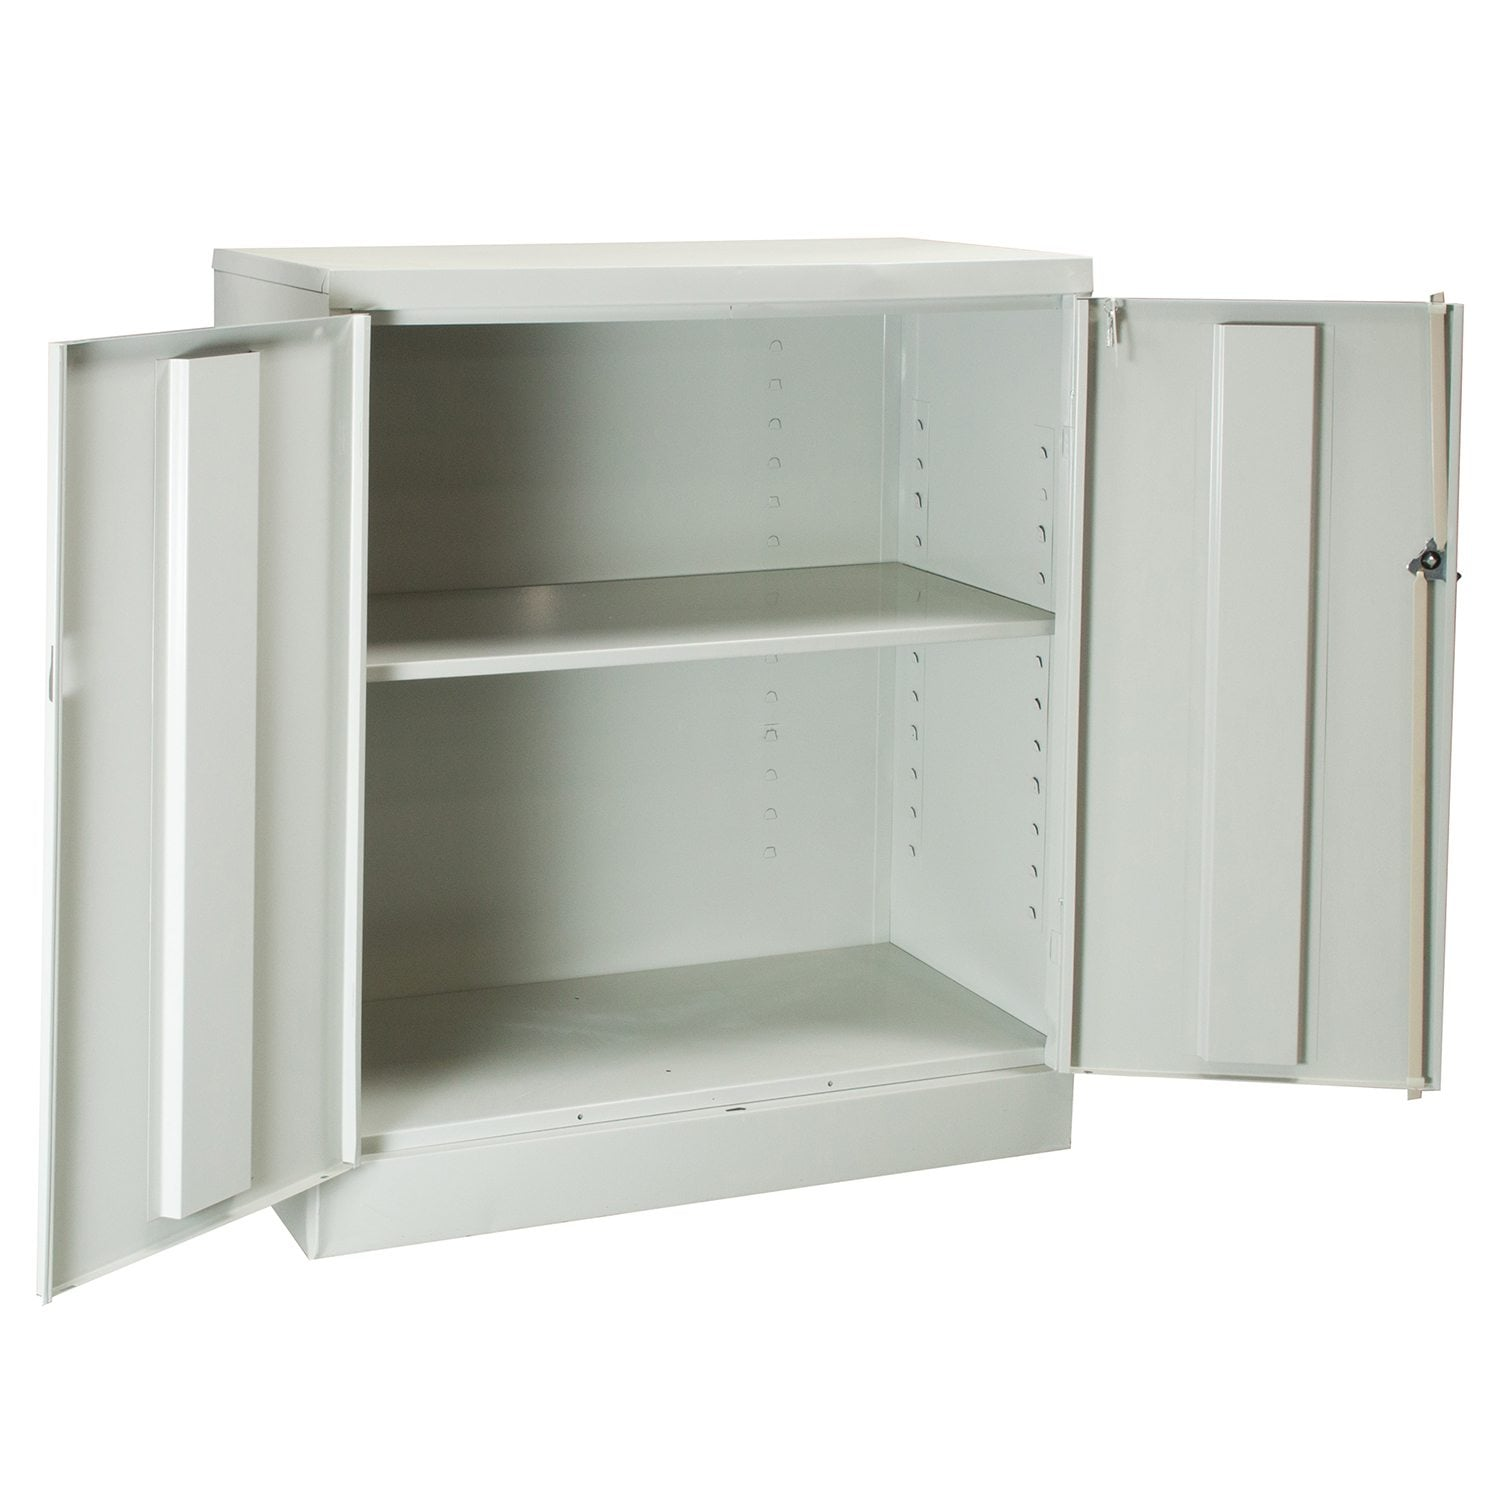 Anderson Hickey Used 2 Shelf 36 Inch Storage Cabinet